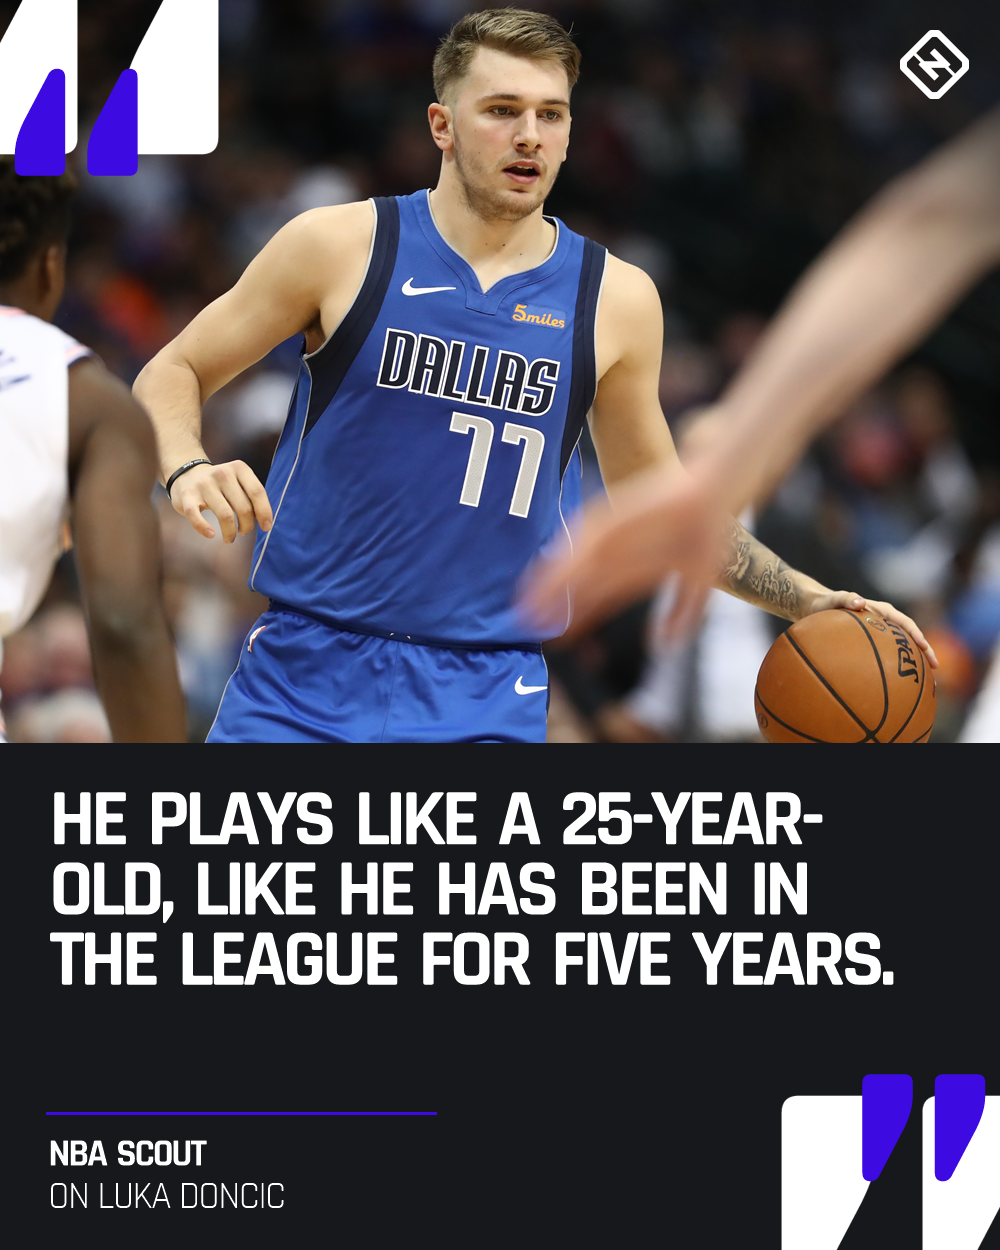 luka-doncic-quote-graphic-121918.jpg